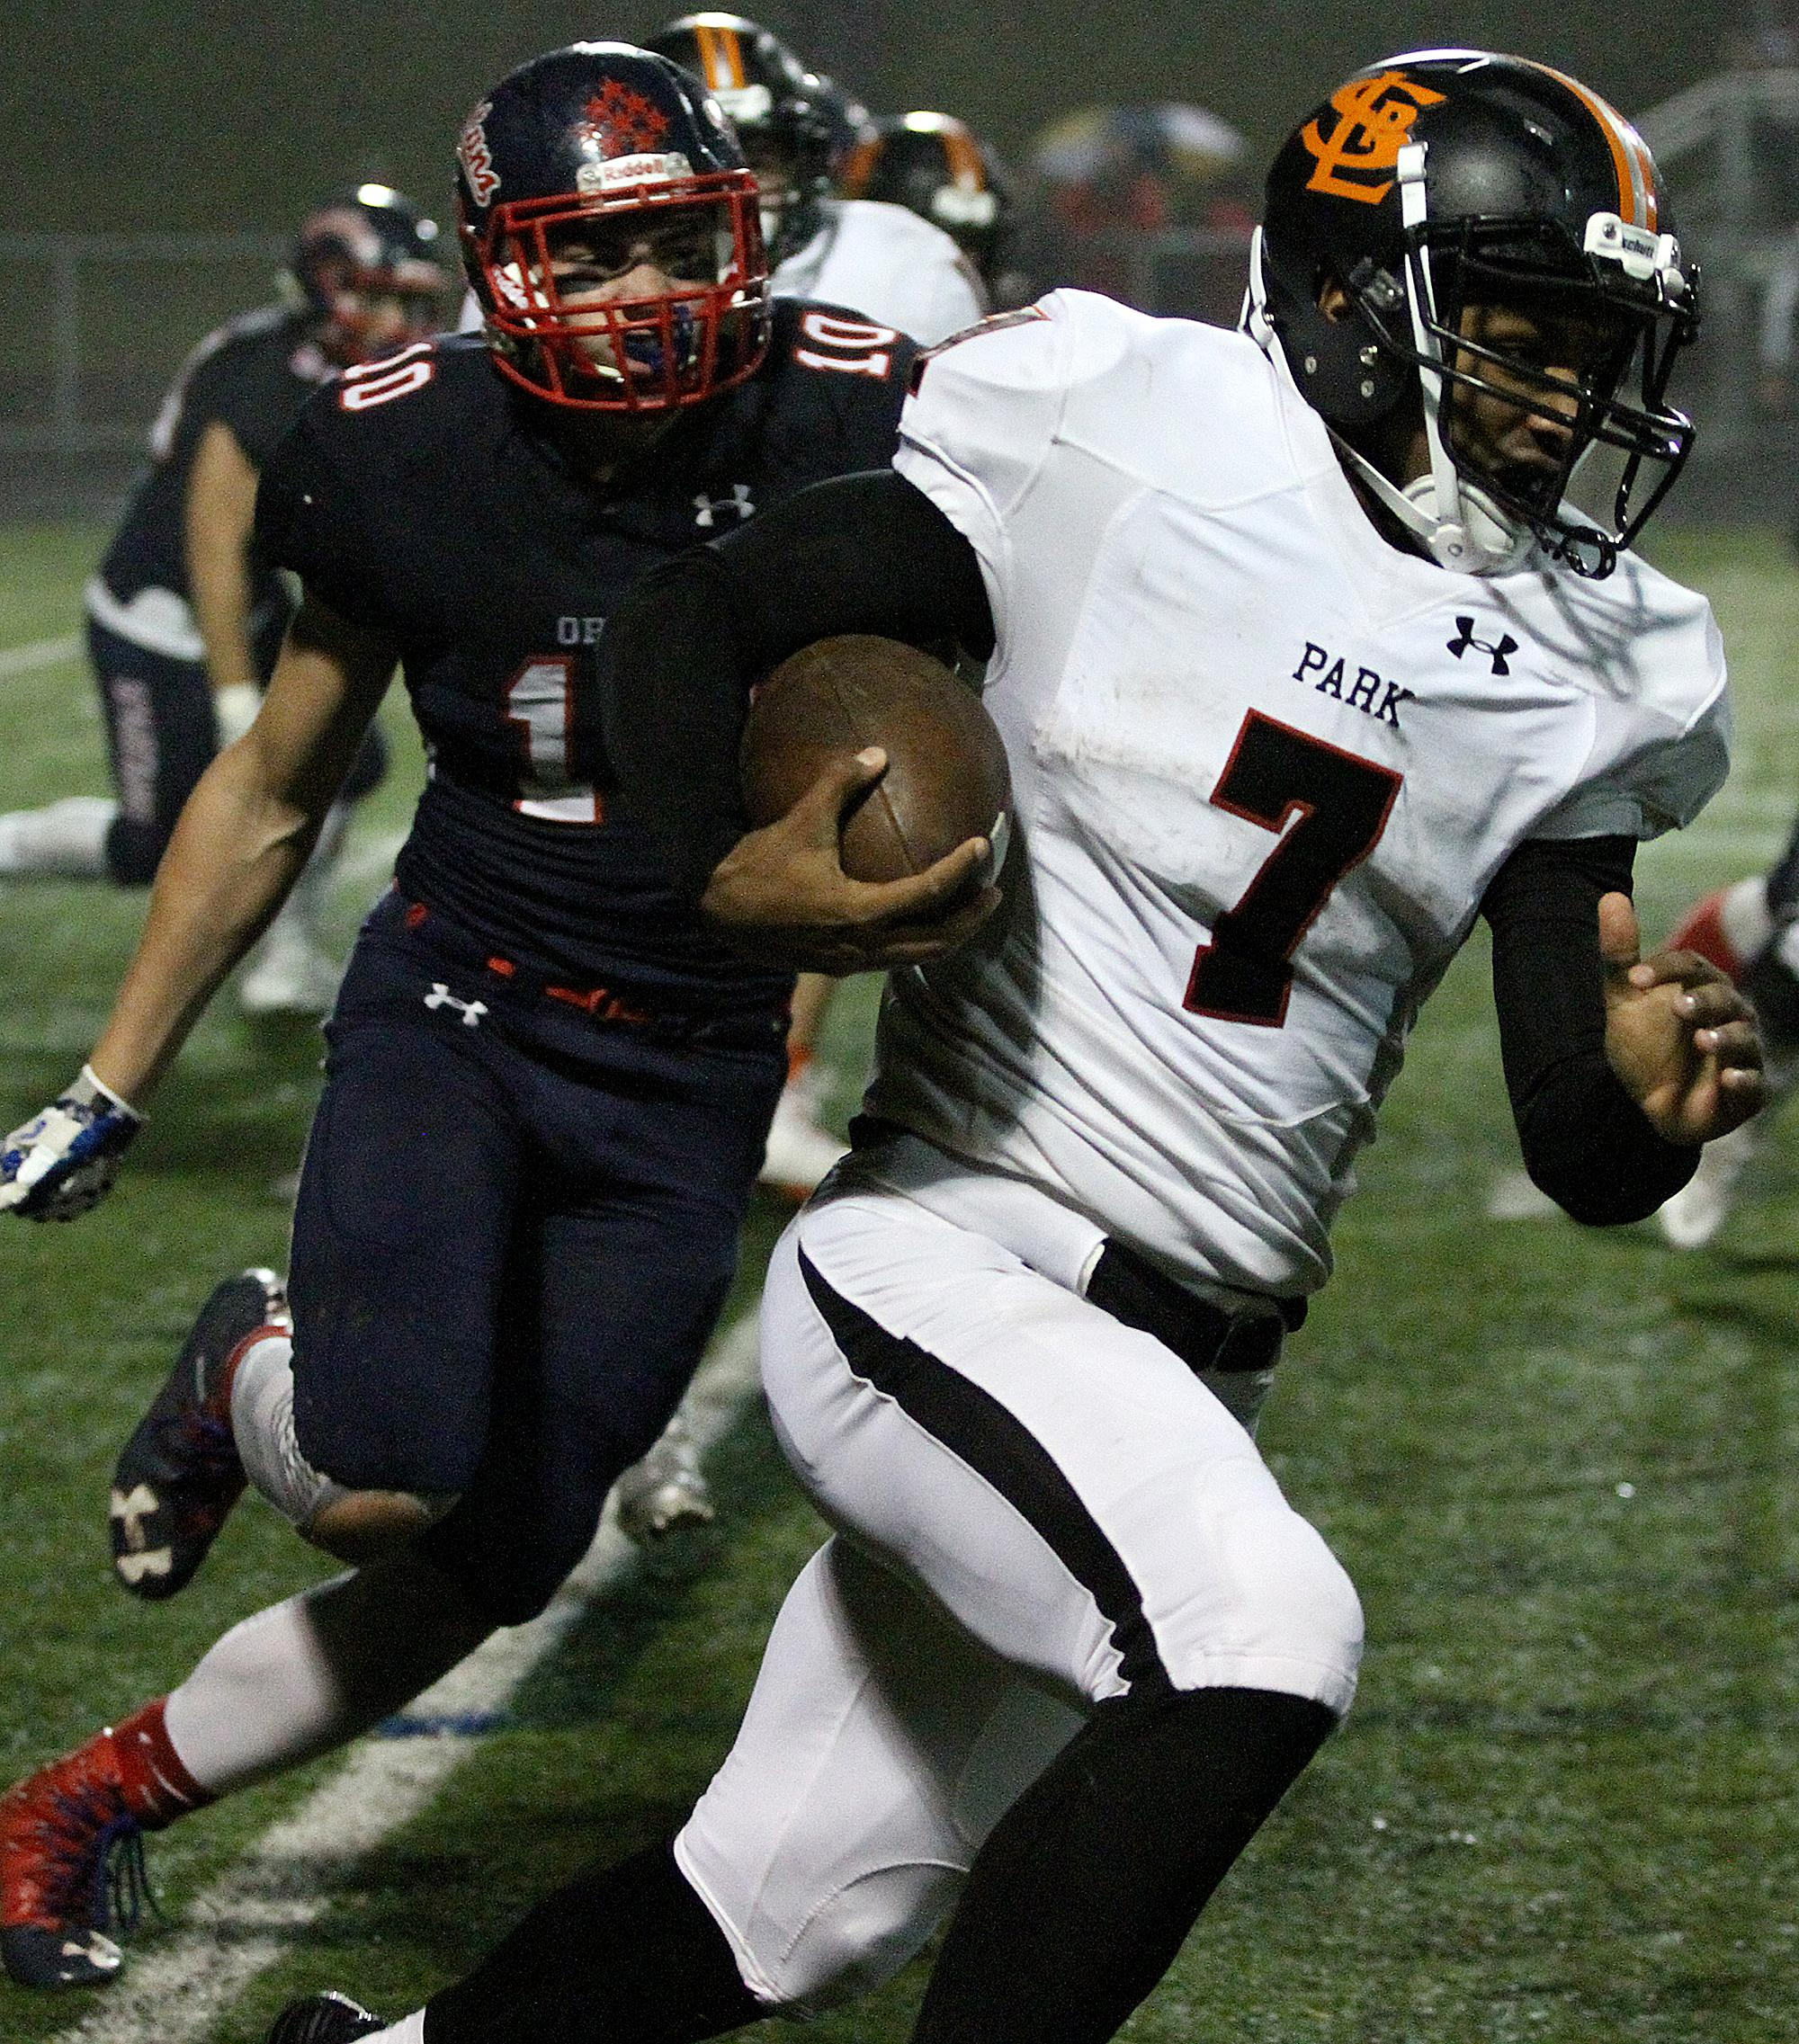 St. Louis Park senior Sajid Nathim helped drive the Orioles' ground attack with 28 carries for 151 yards Friday night at Orono. Photo by Drew Herron, SportsEngine